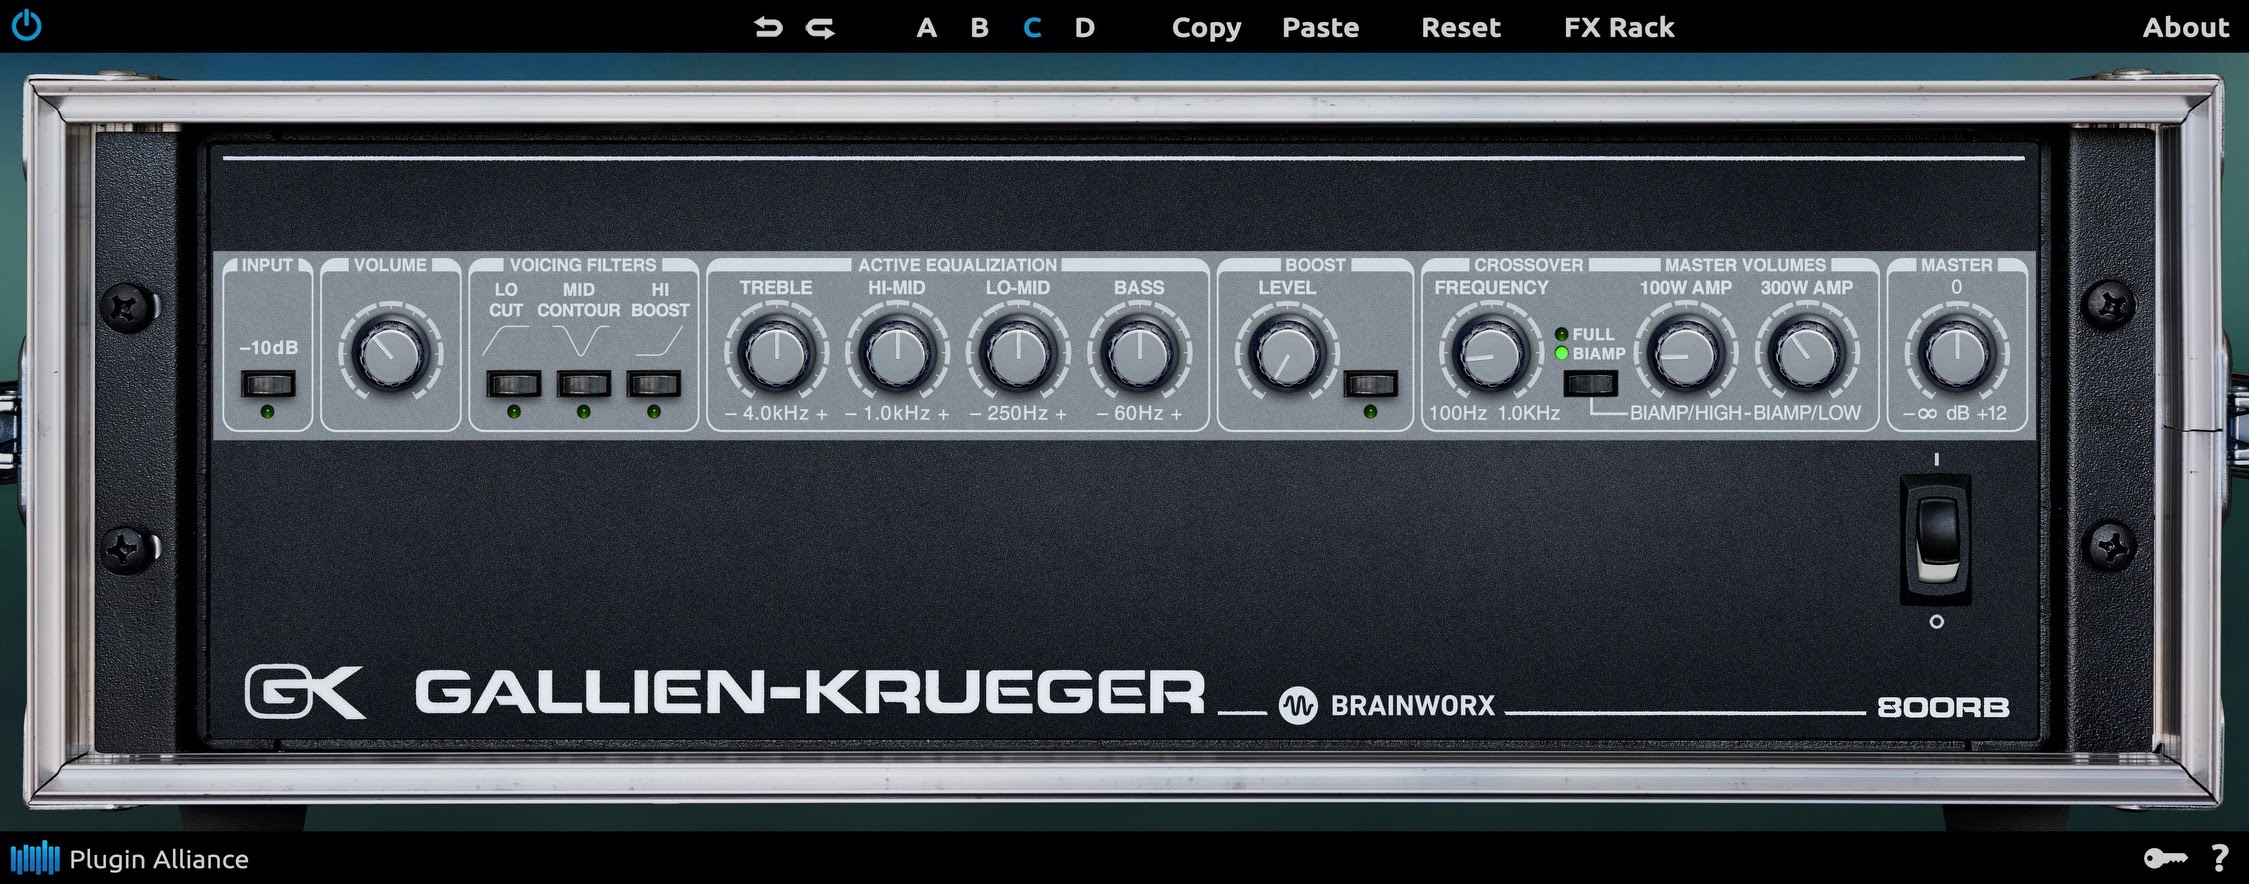 GK-800RB Interface